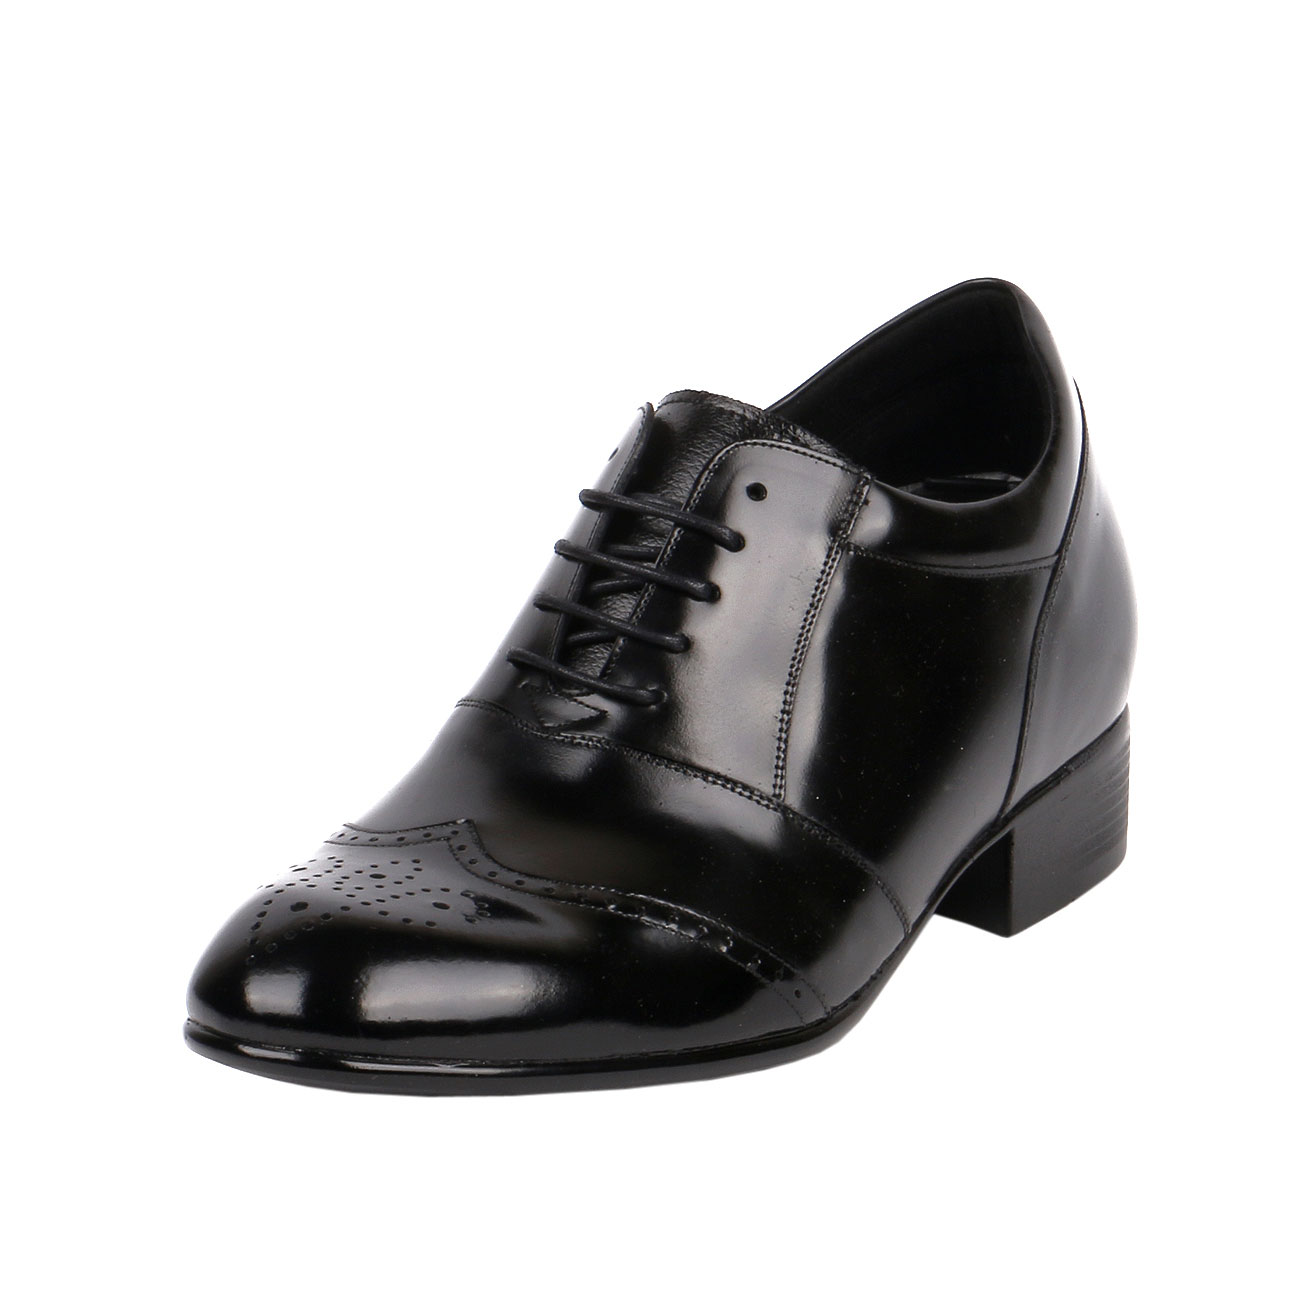 KL609, Semi Glossy Wide Width Formal Dress Shoes Light Weight  to Make 3